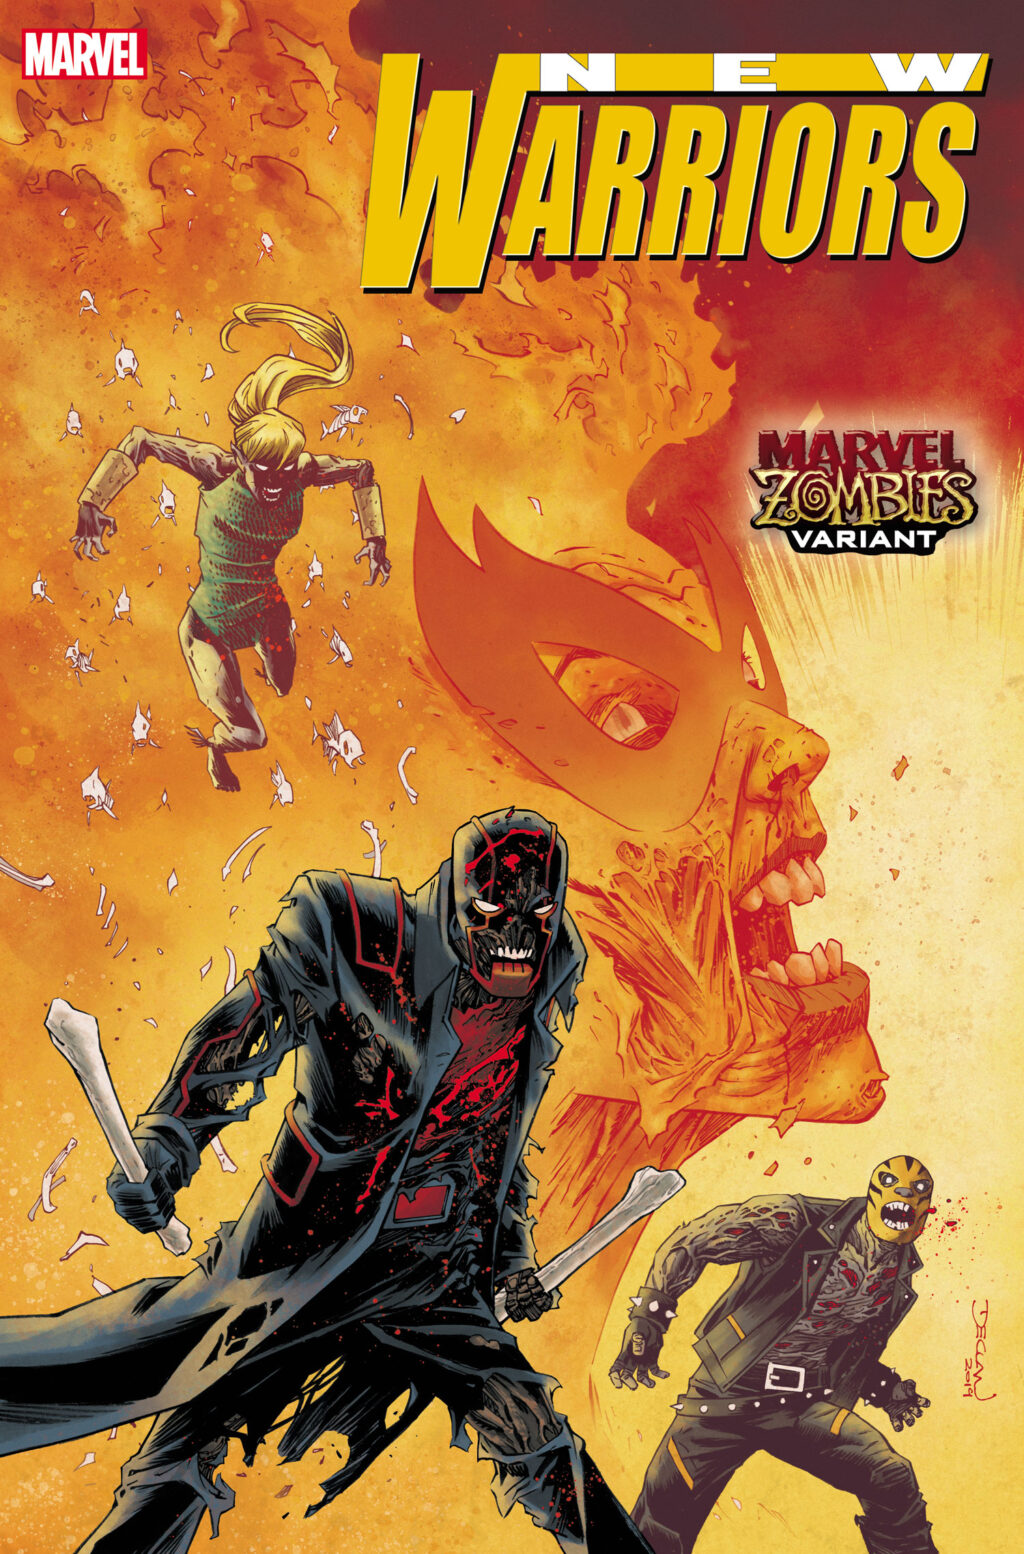 NEWWAR2020001 Shalvey Zombies 1024x1554 - Image Gallery: The Undead Rise in April's MARVEL ZOMBIES Variant Covers